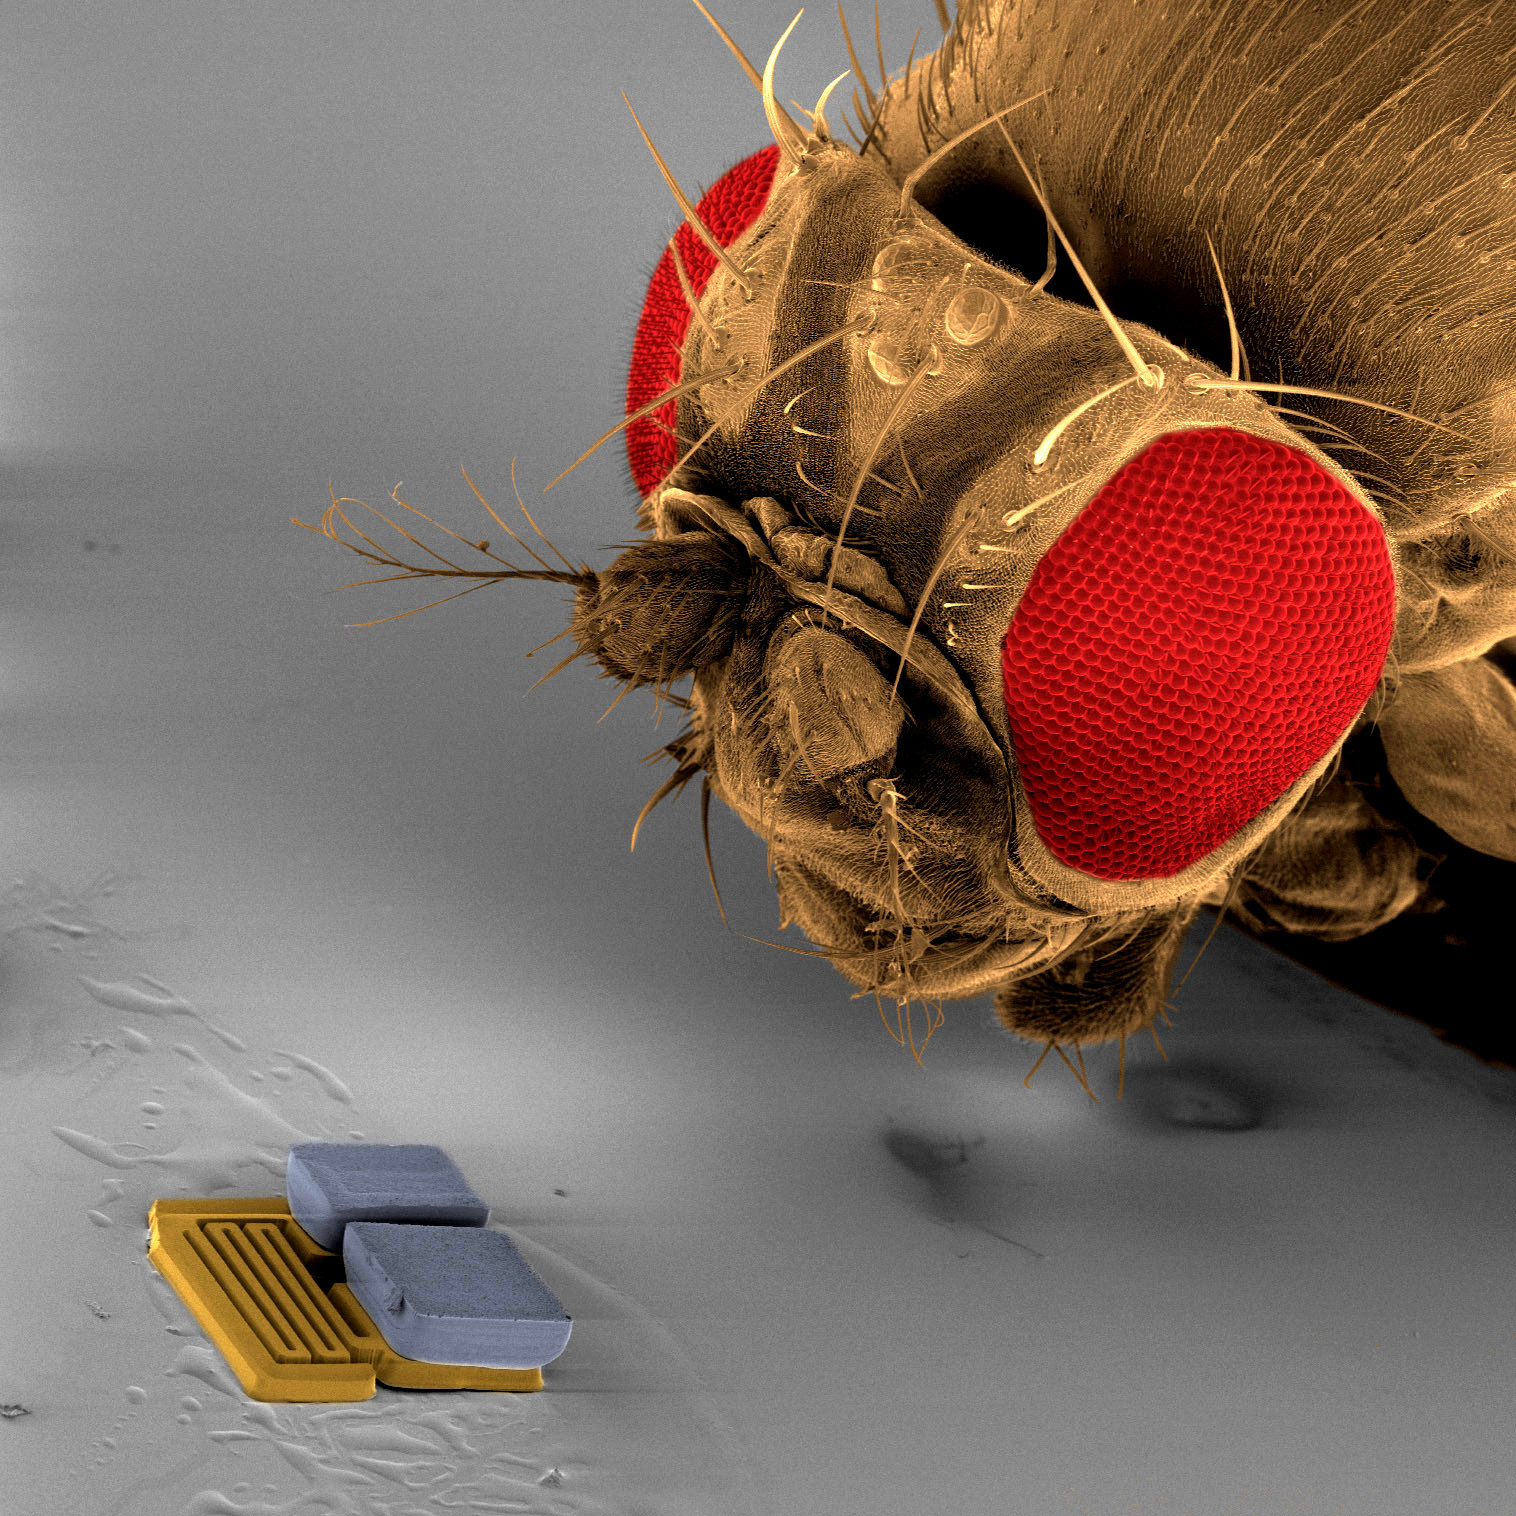 autonomous jumping microrobots essay Using materials with properties similar to those of cells and microorganisms together with innovative fabrication methods, soft and smart microrobots can be developed, with increased adaptability.